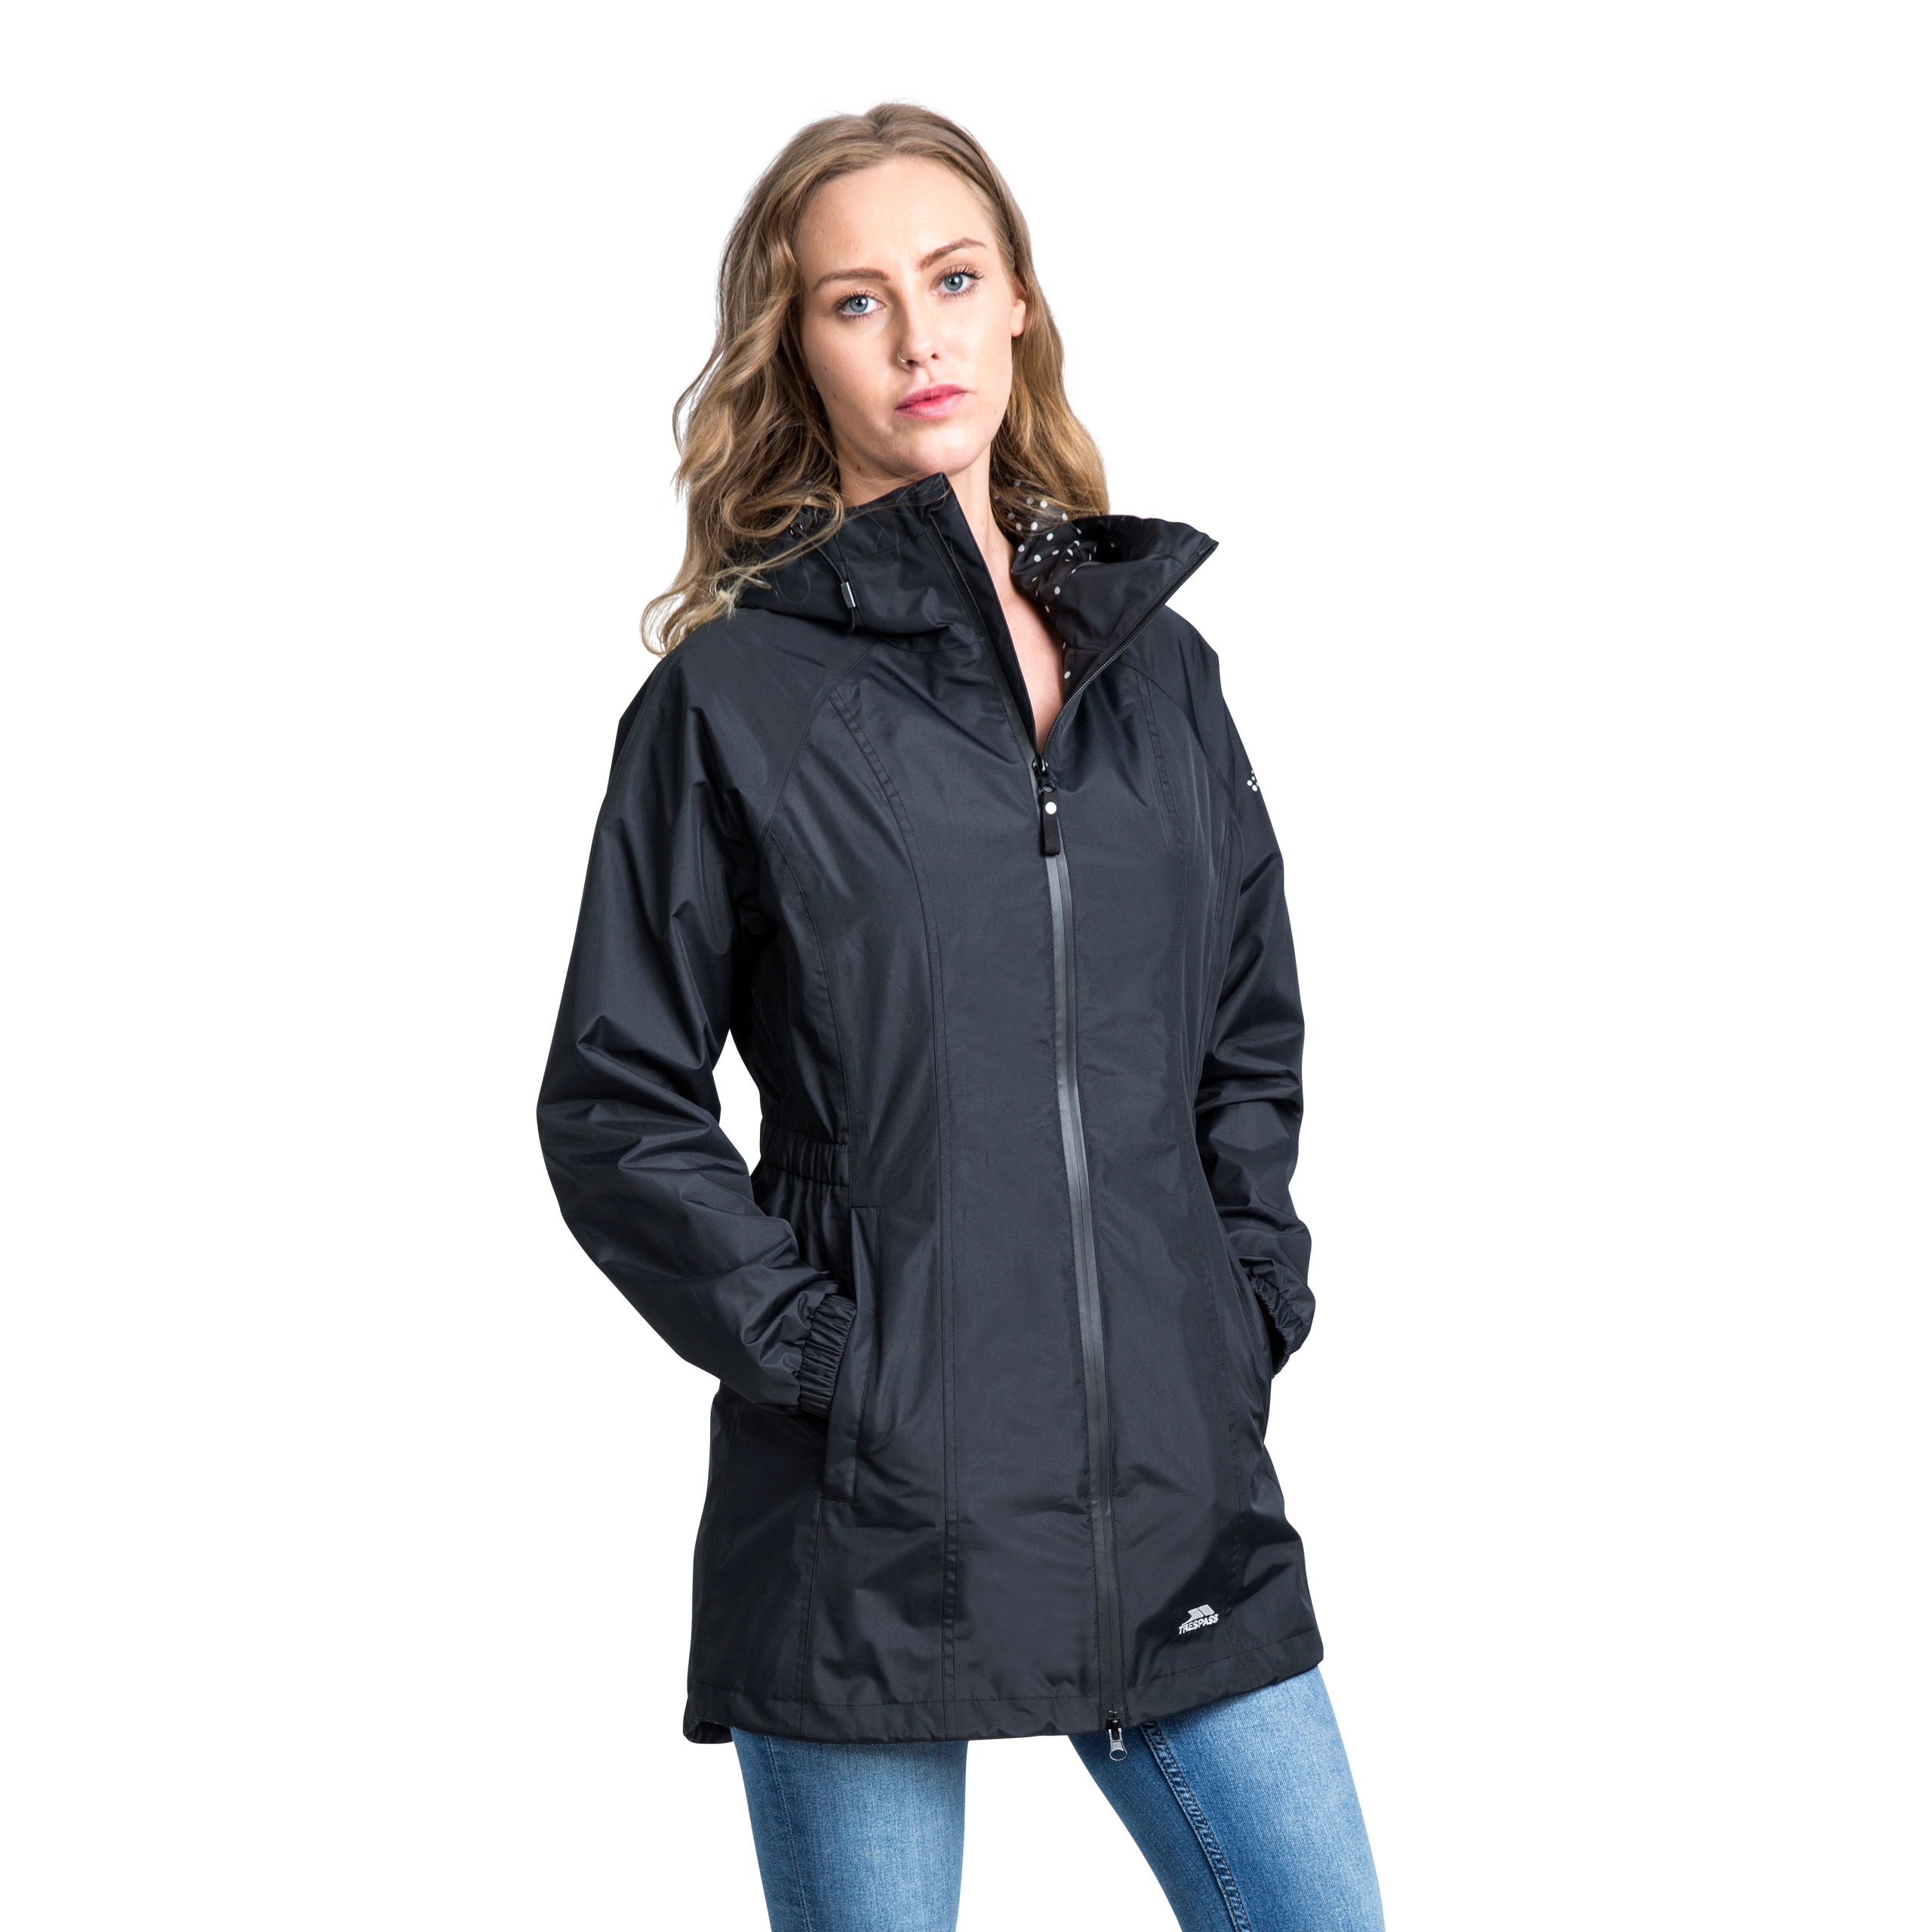 Trespass-Womens-Parka-Jacket-Hooded-Waterproof-Longline-Coat-Polka-Dot thumbnail 14